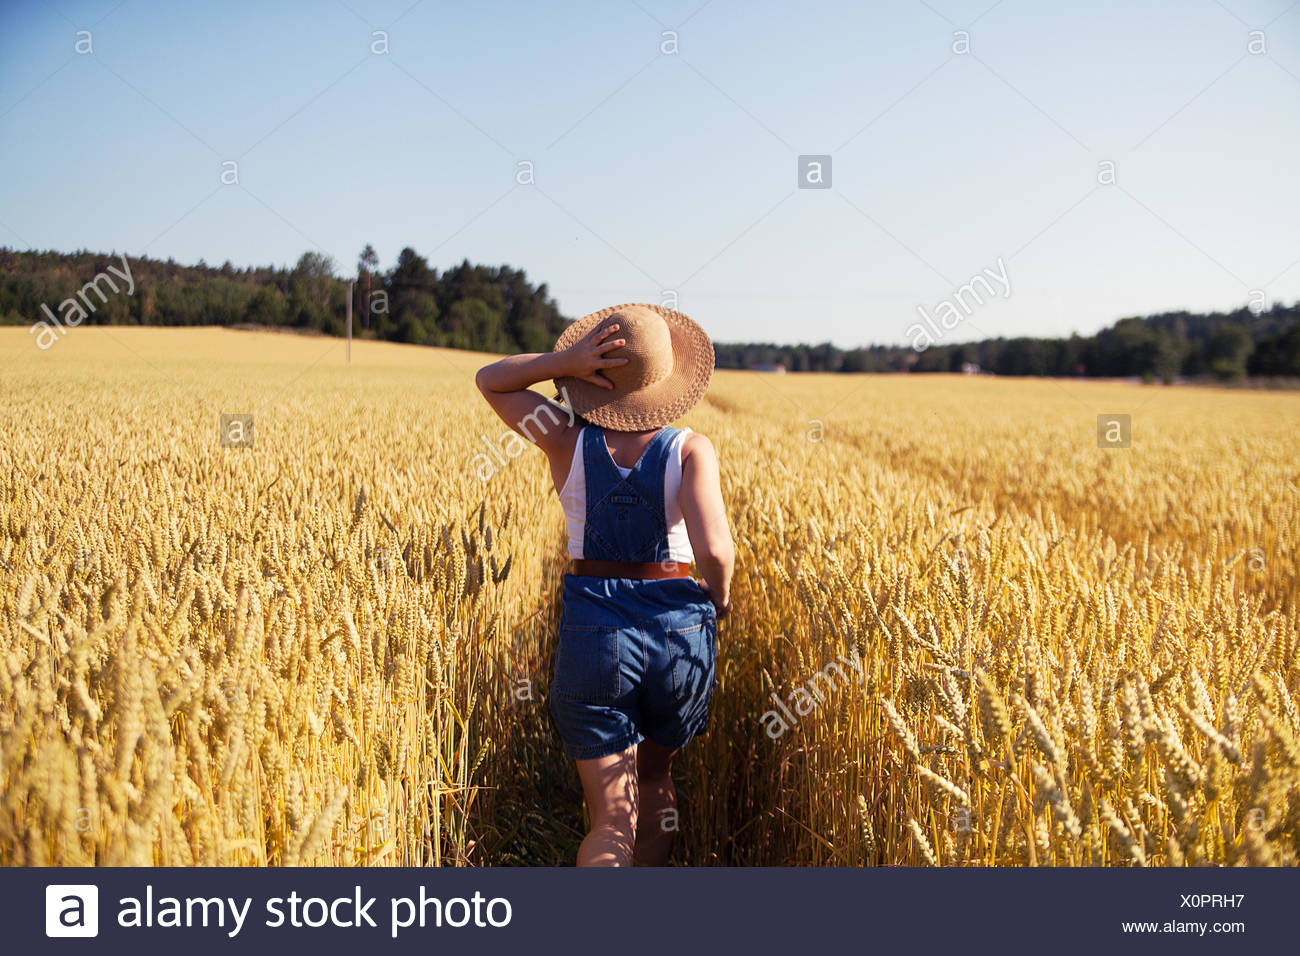 Rear view of young woman strolling in wheat field holding onto straw hat - Stock Image